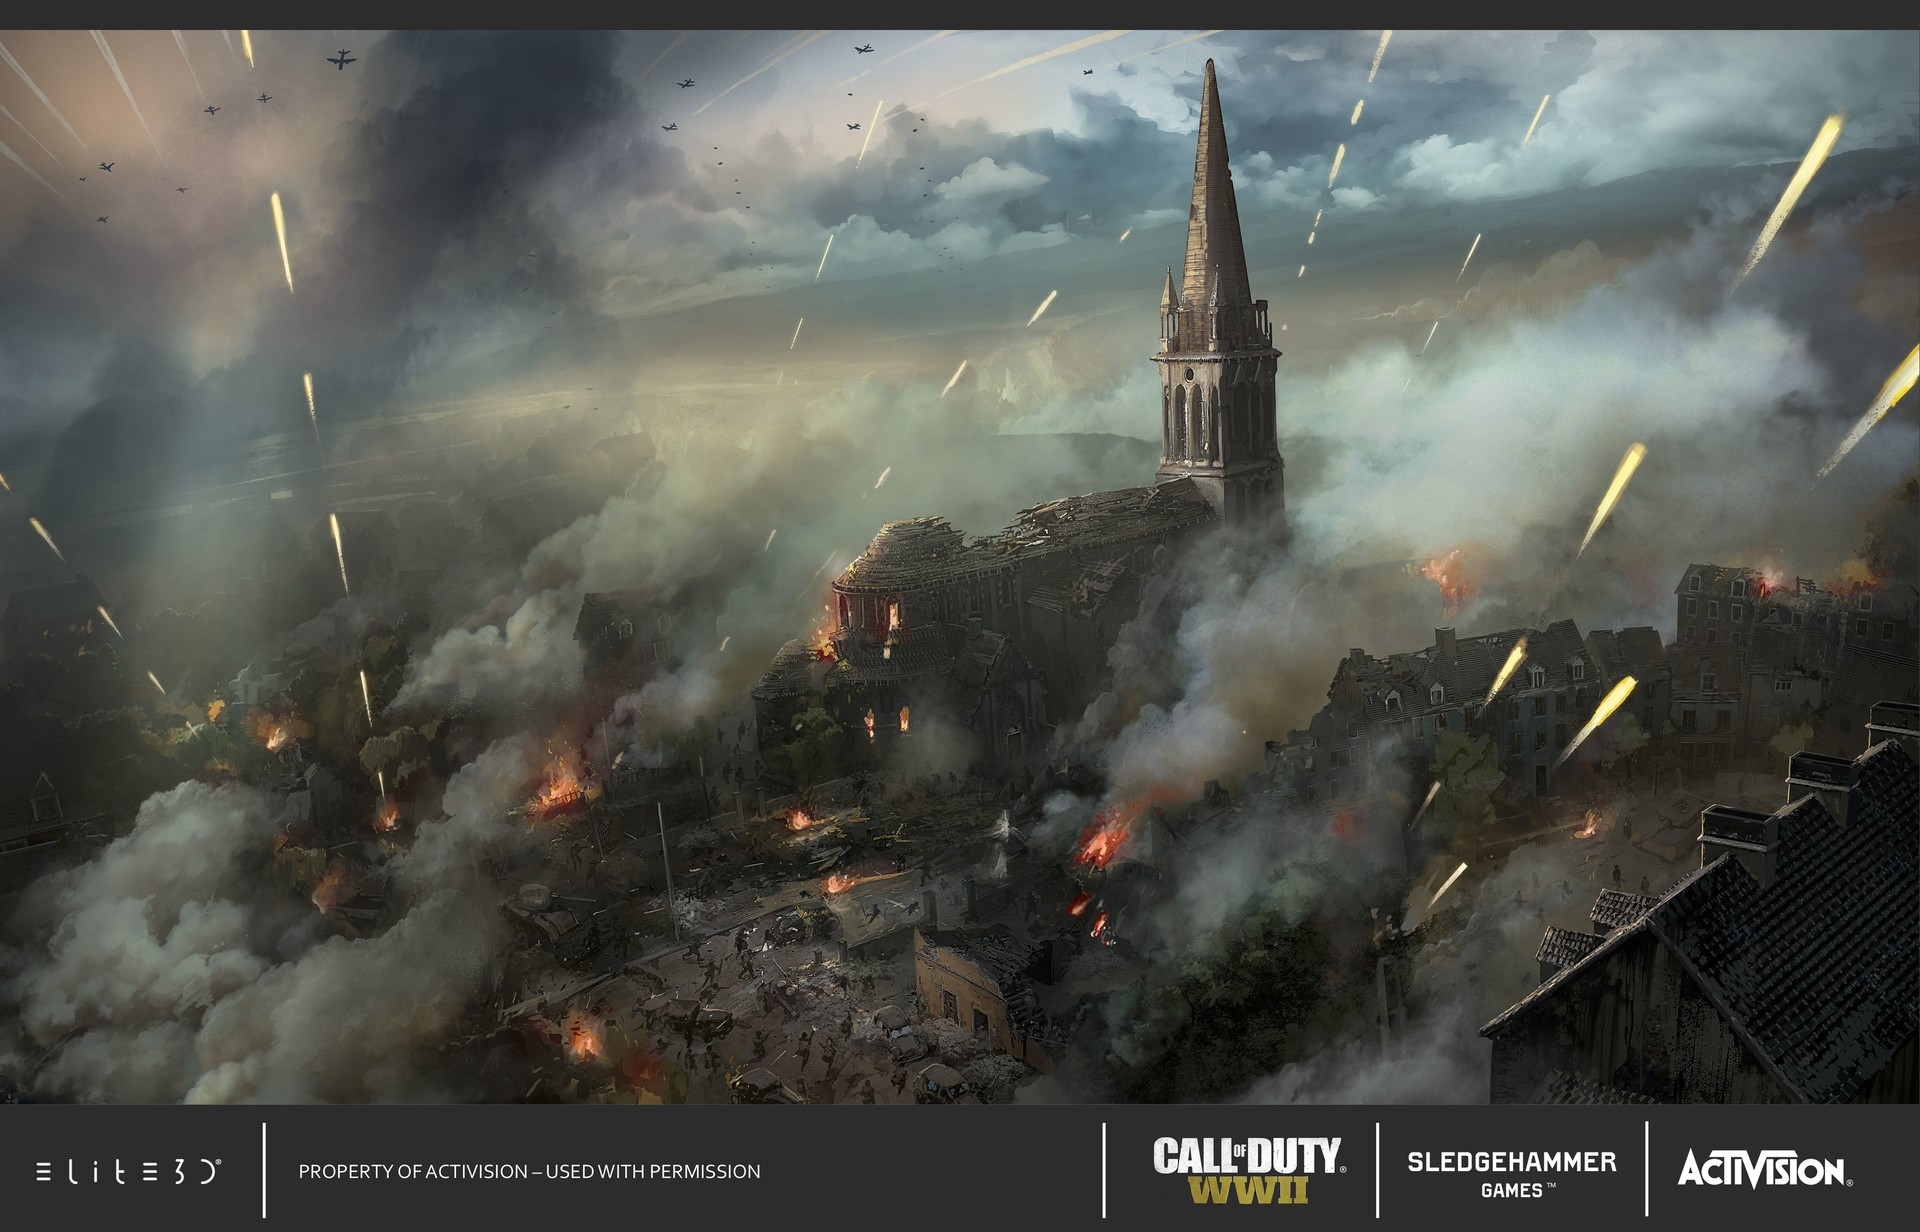 Call of Duty/ World War II